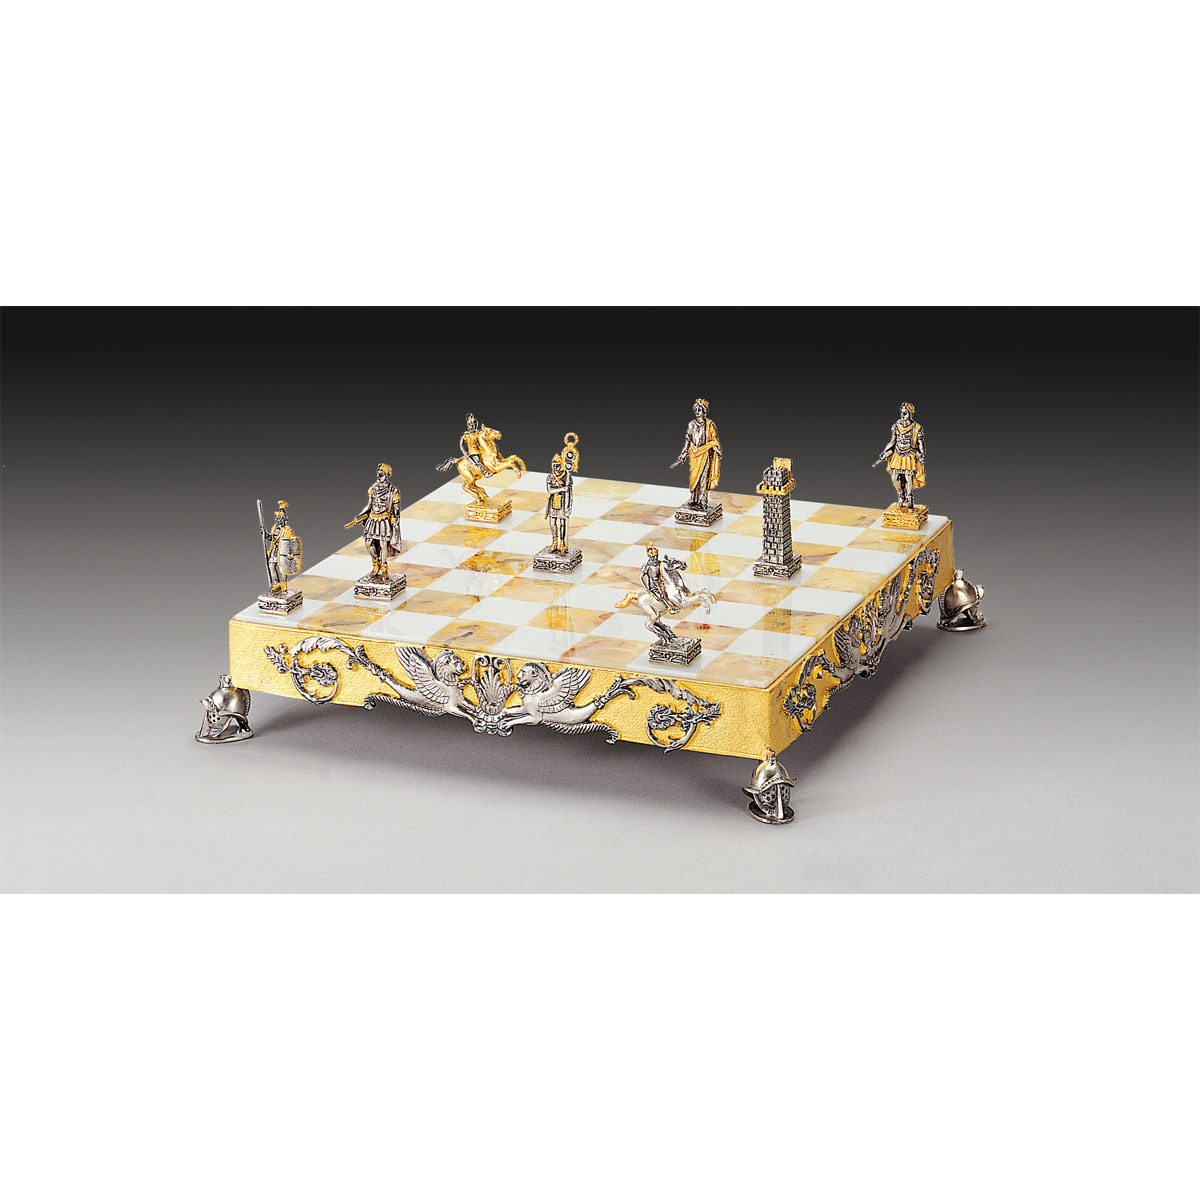 Caesar Augustus Roman Empire Themed Chess Set | Gold & Silver